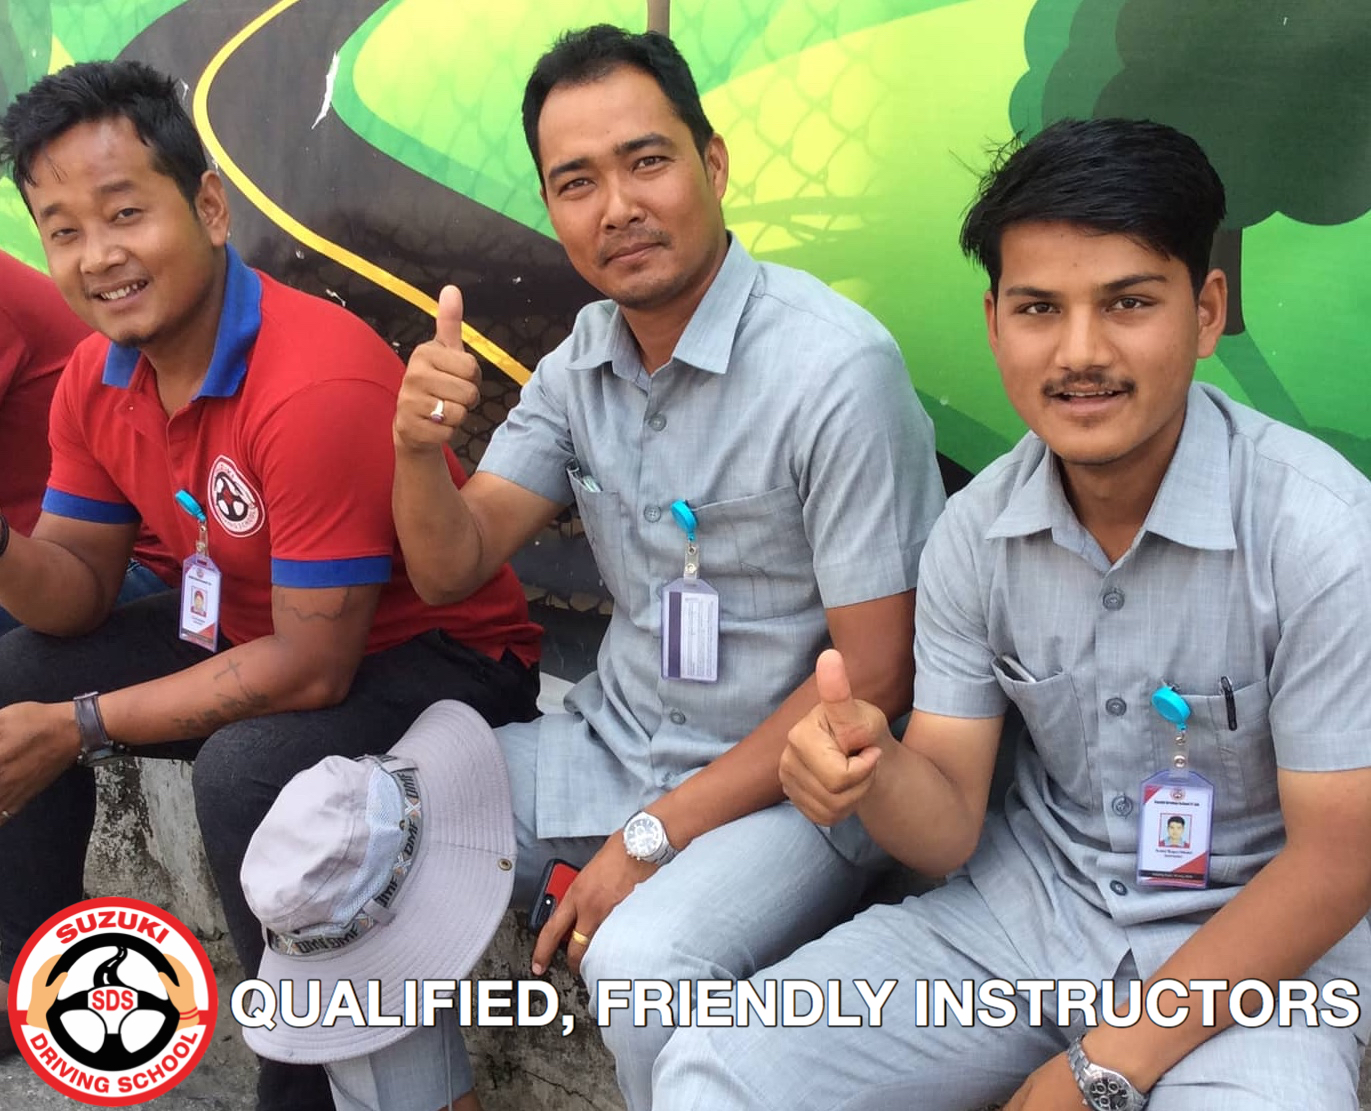 FRIENDLY INSTRUCTORS